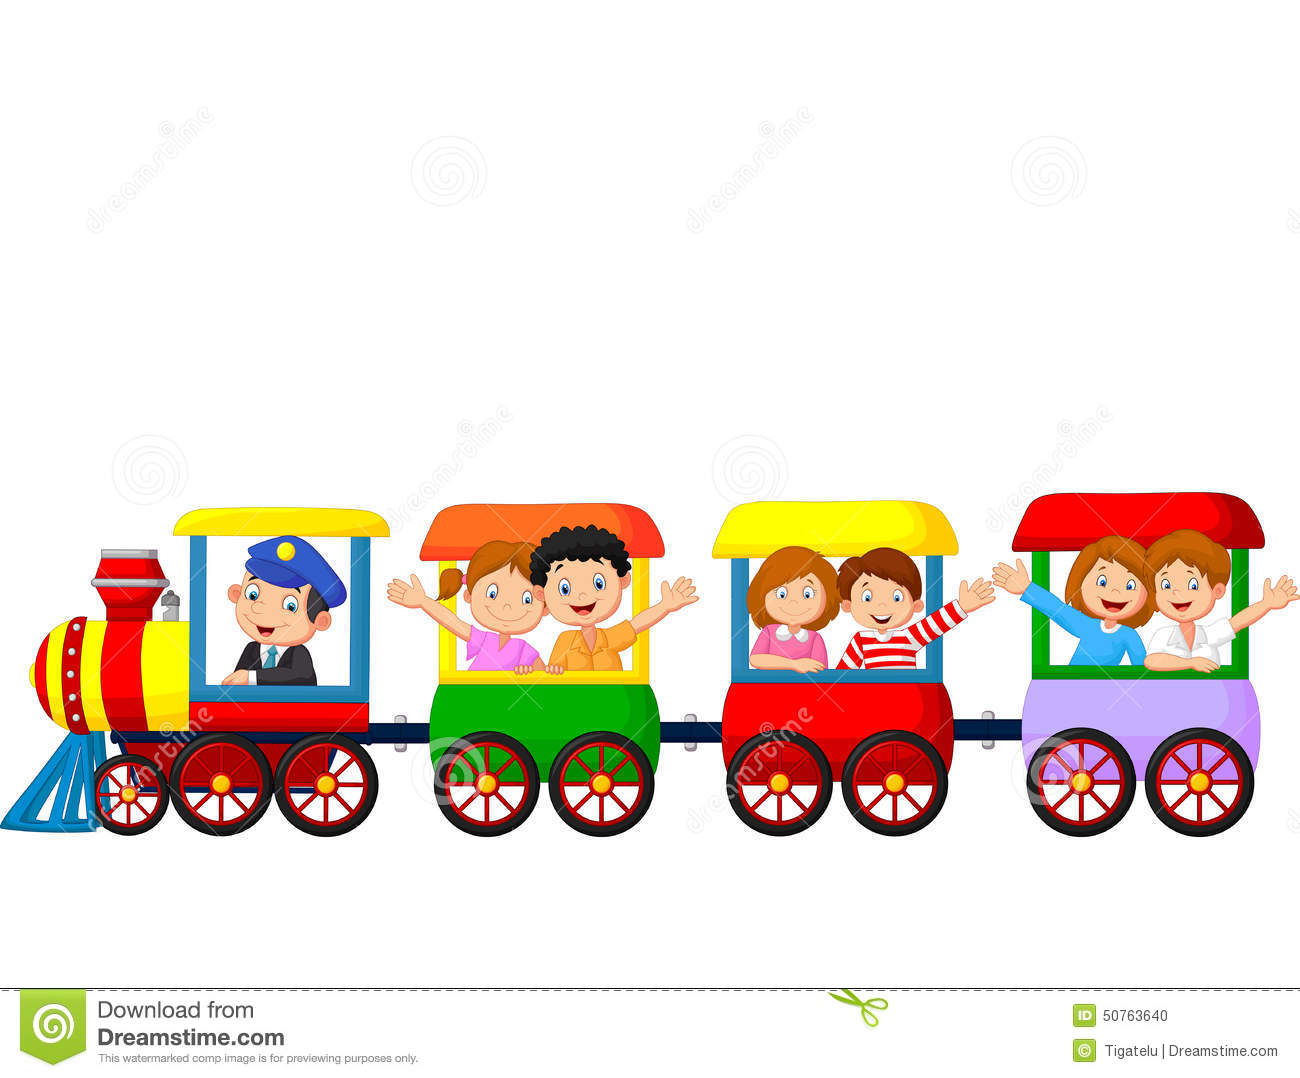 Cartoon train images for kids galleryhip com the hippest galleries